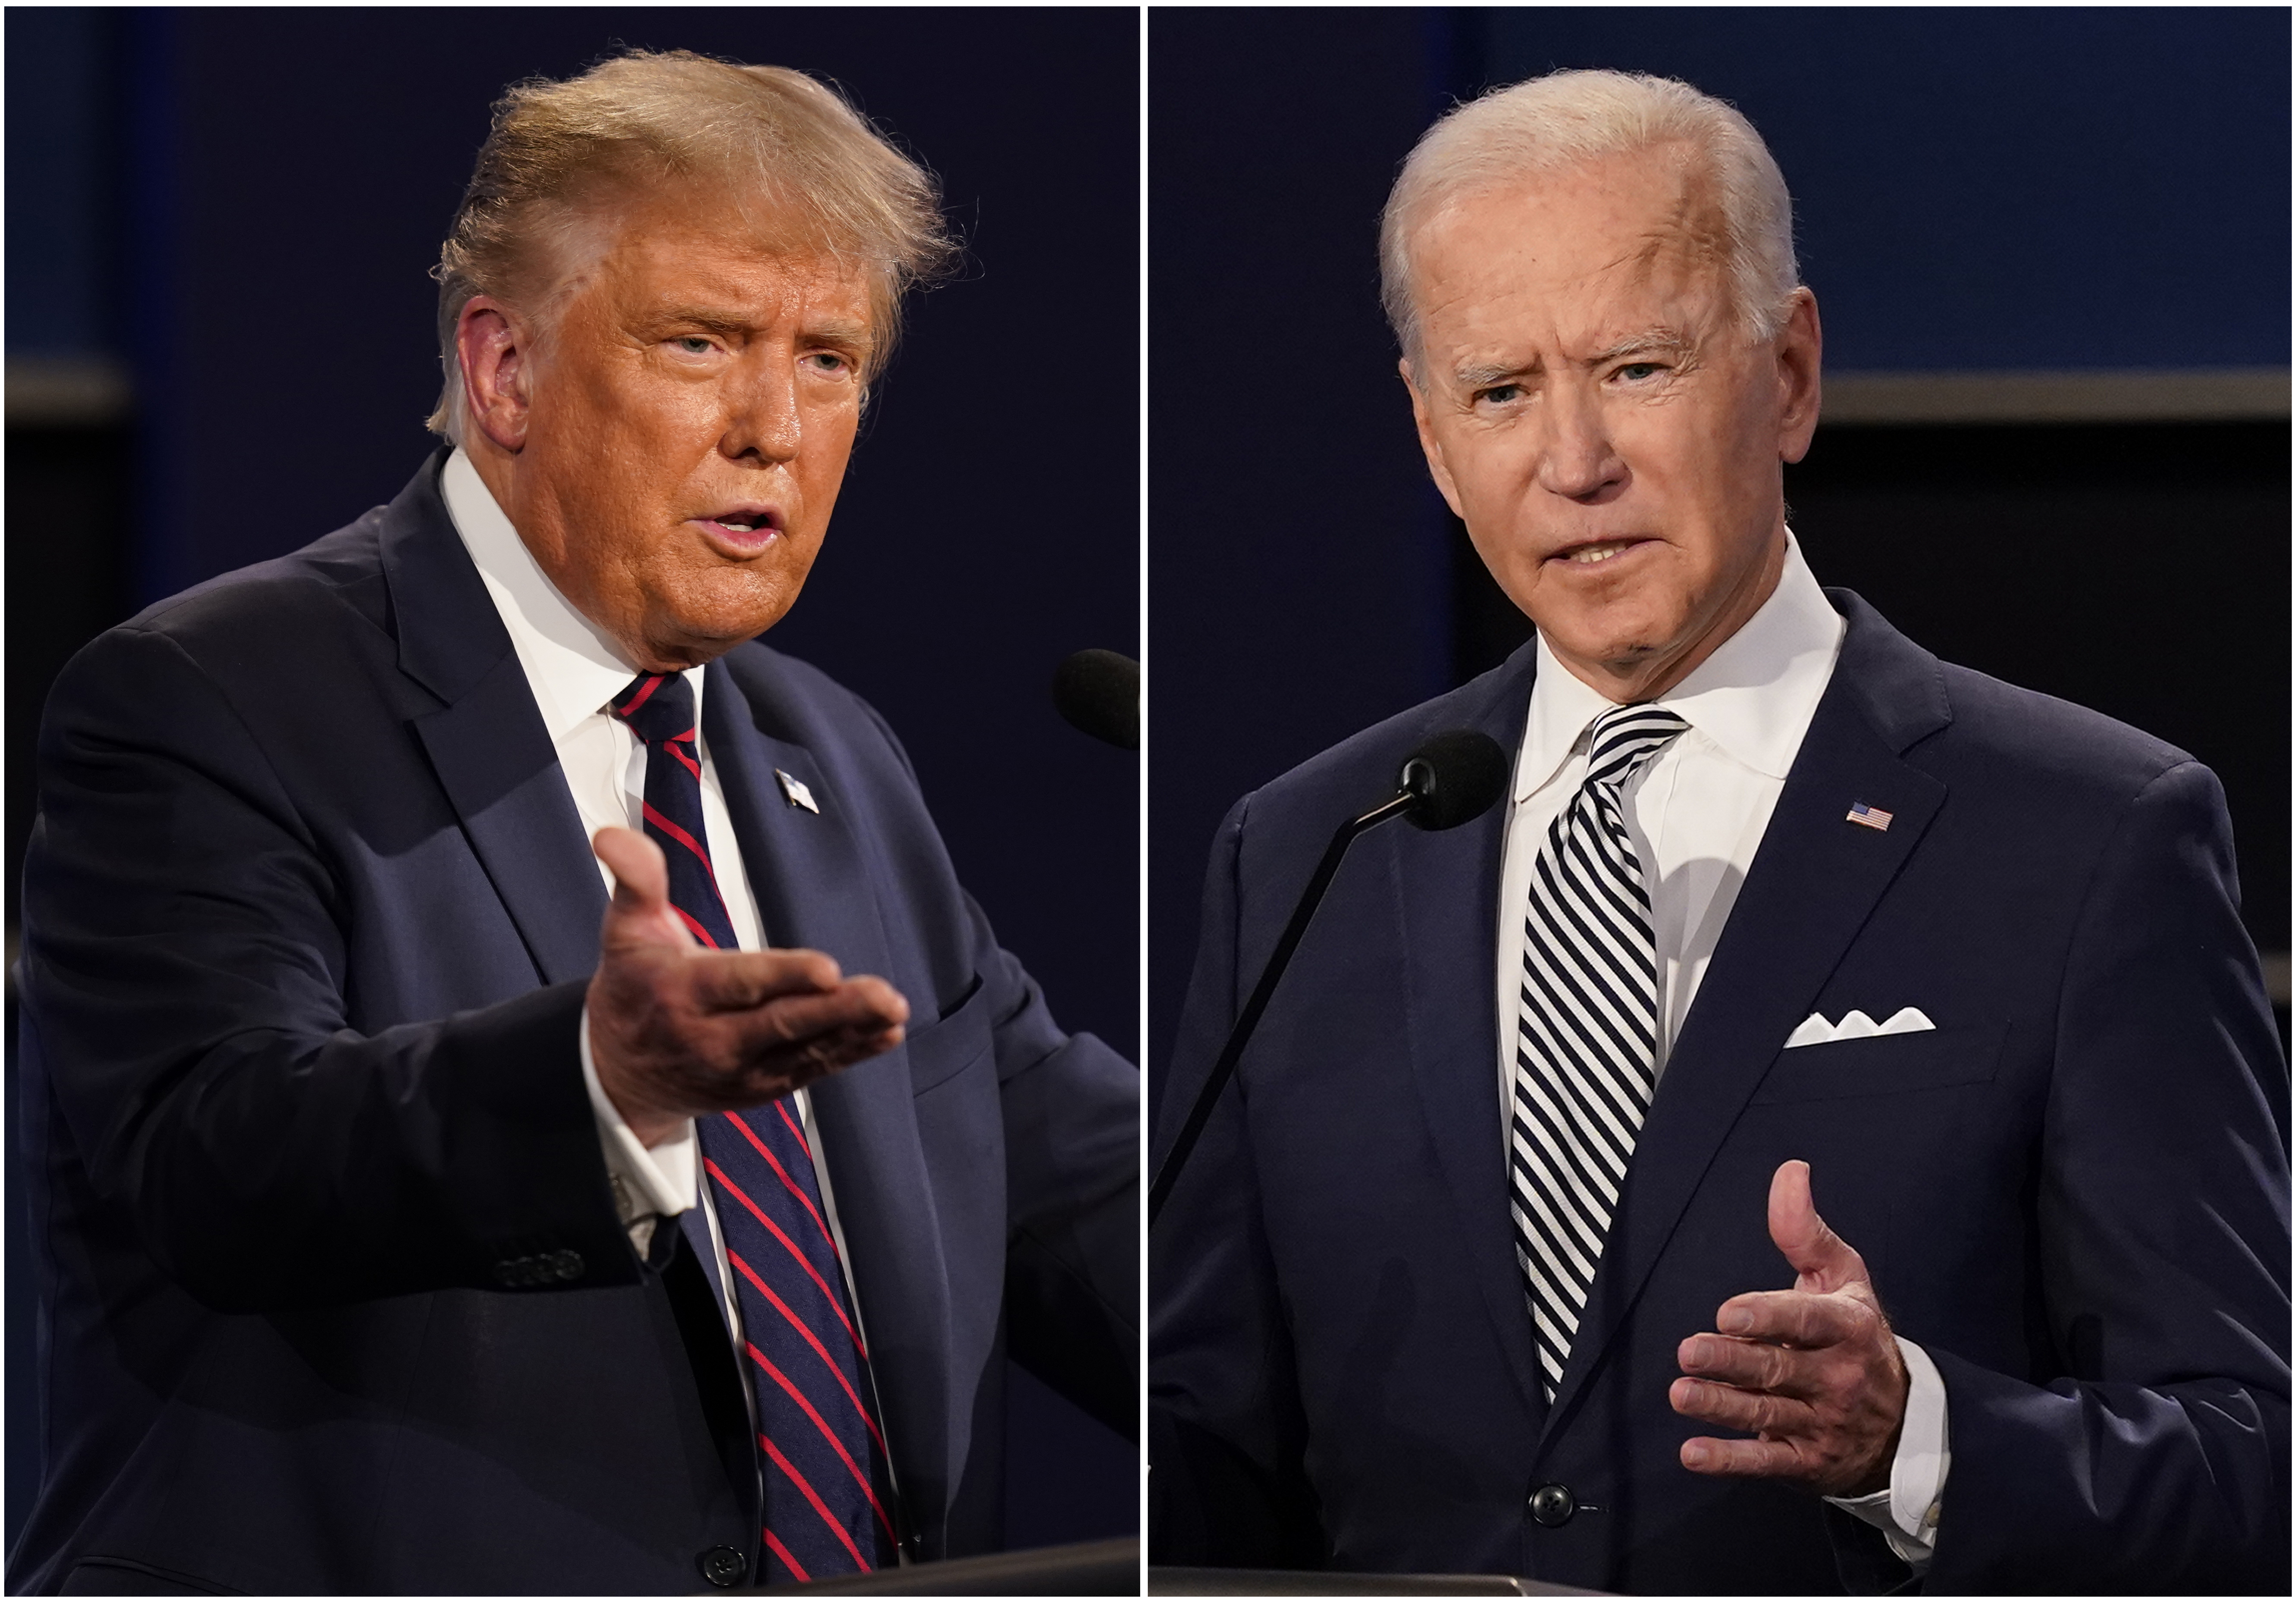 TV Ratings: Biden Wins Town Hall Duel With Trump